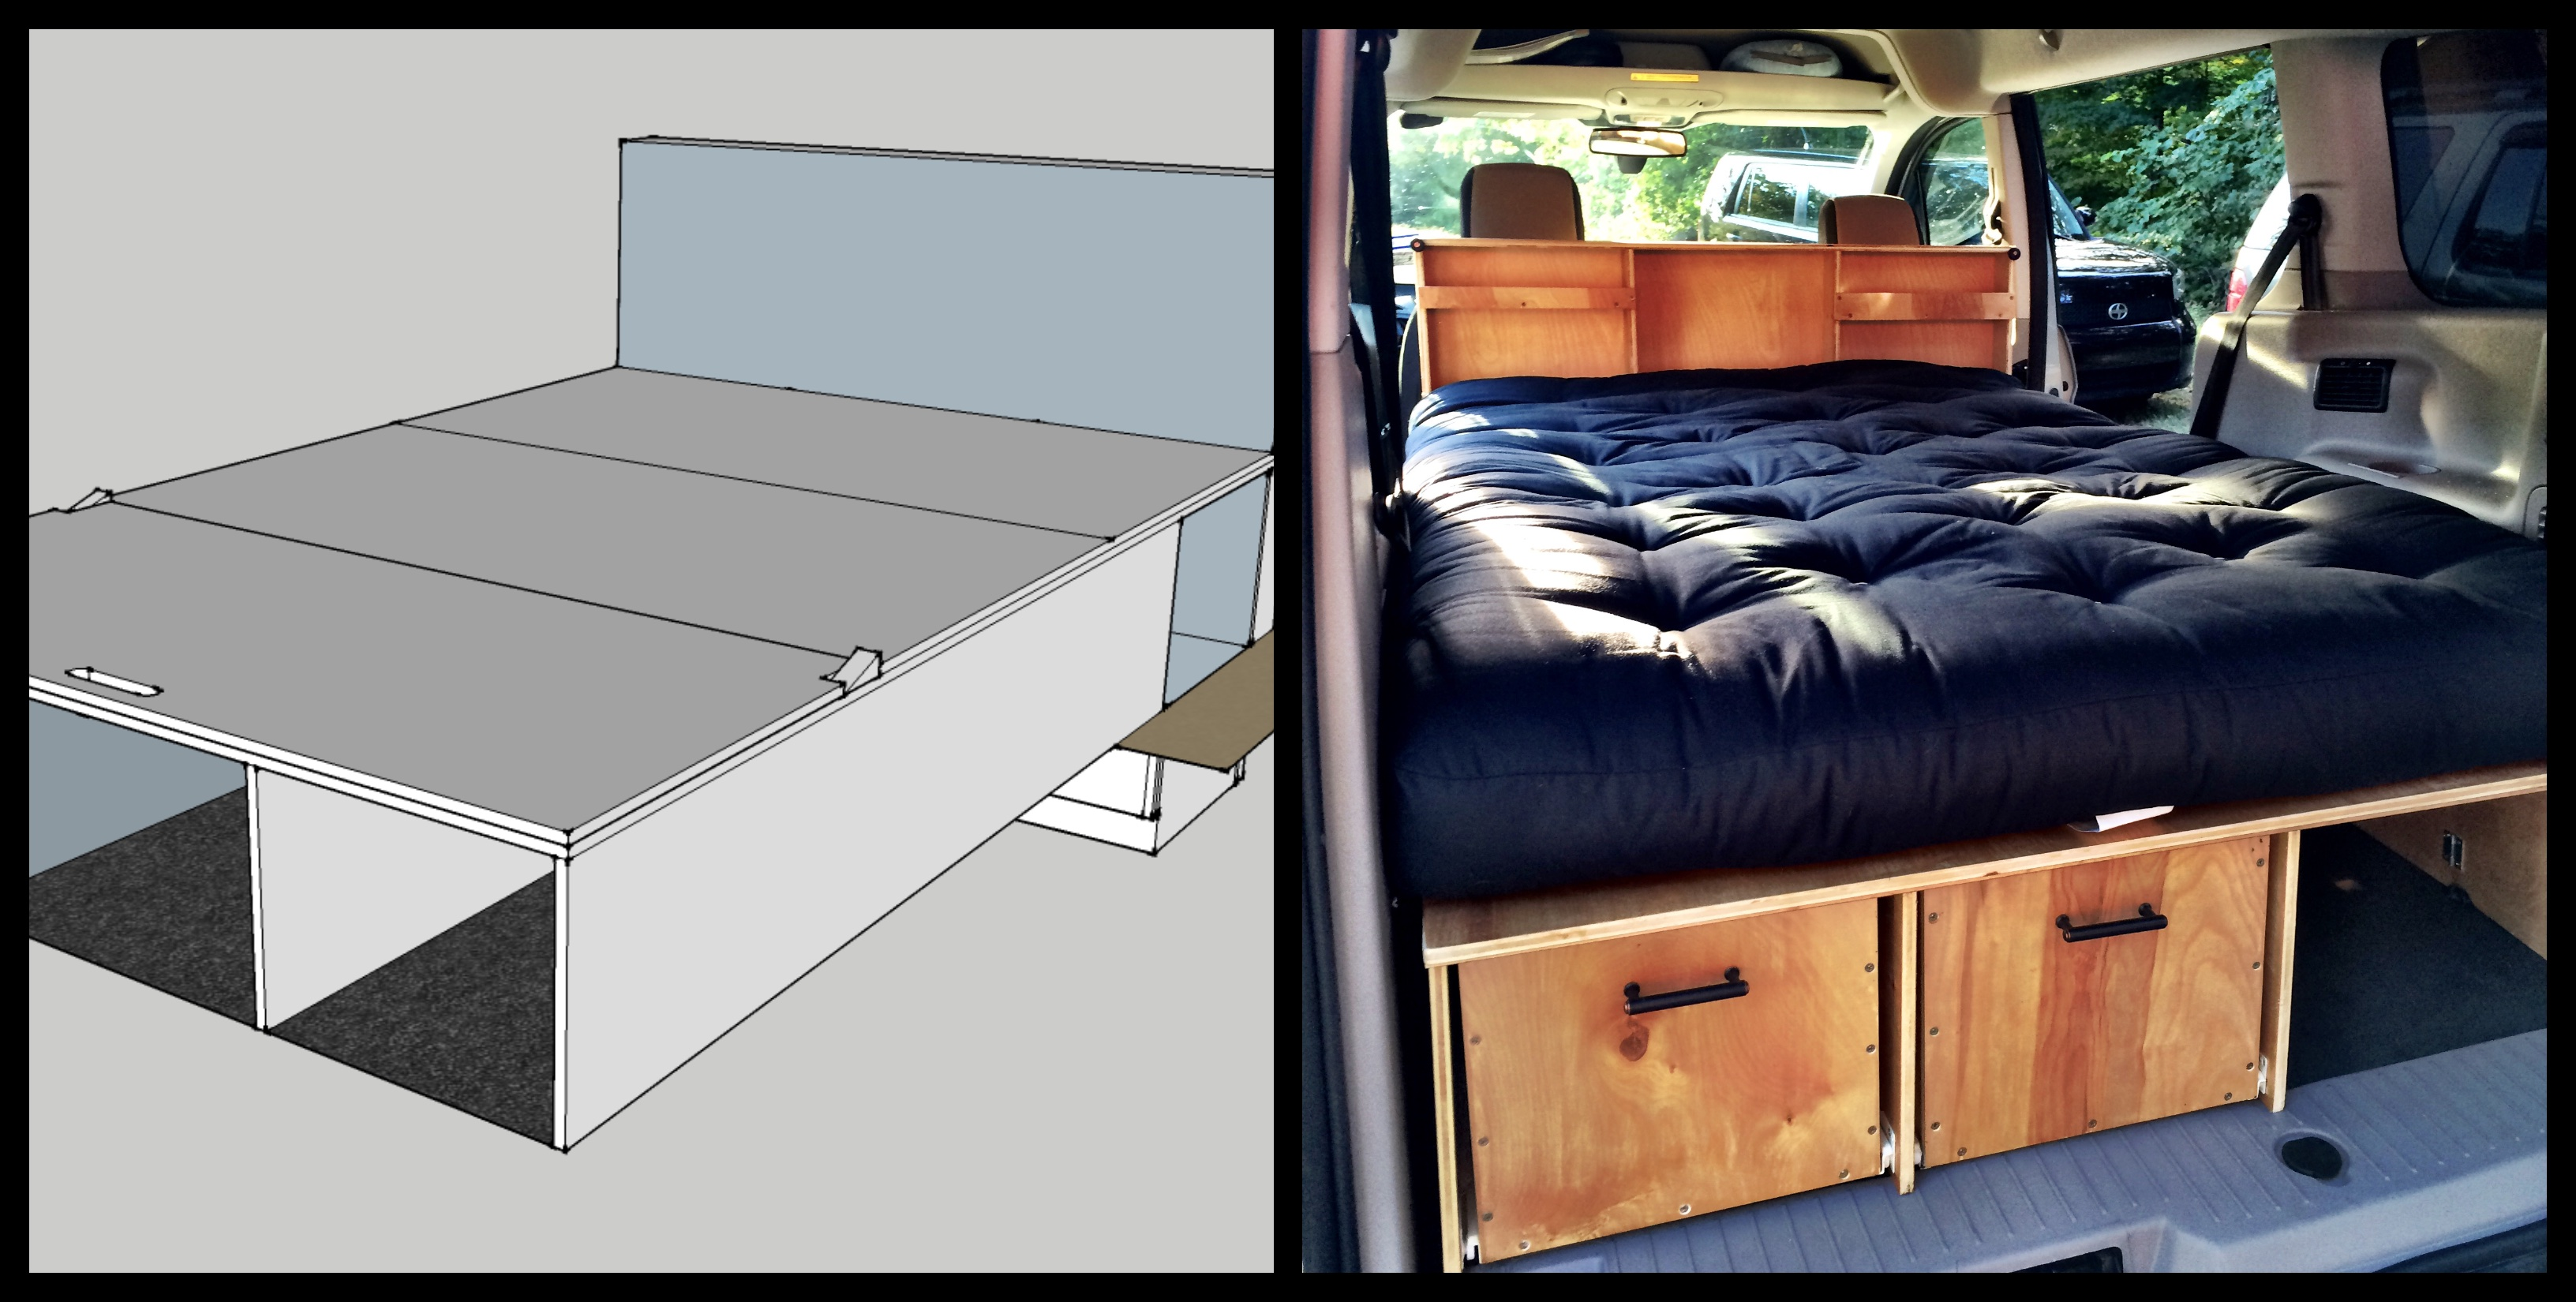 Our Micro Camper A Diy Ford Transit Connect Conversion Guide Alt Nomad